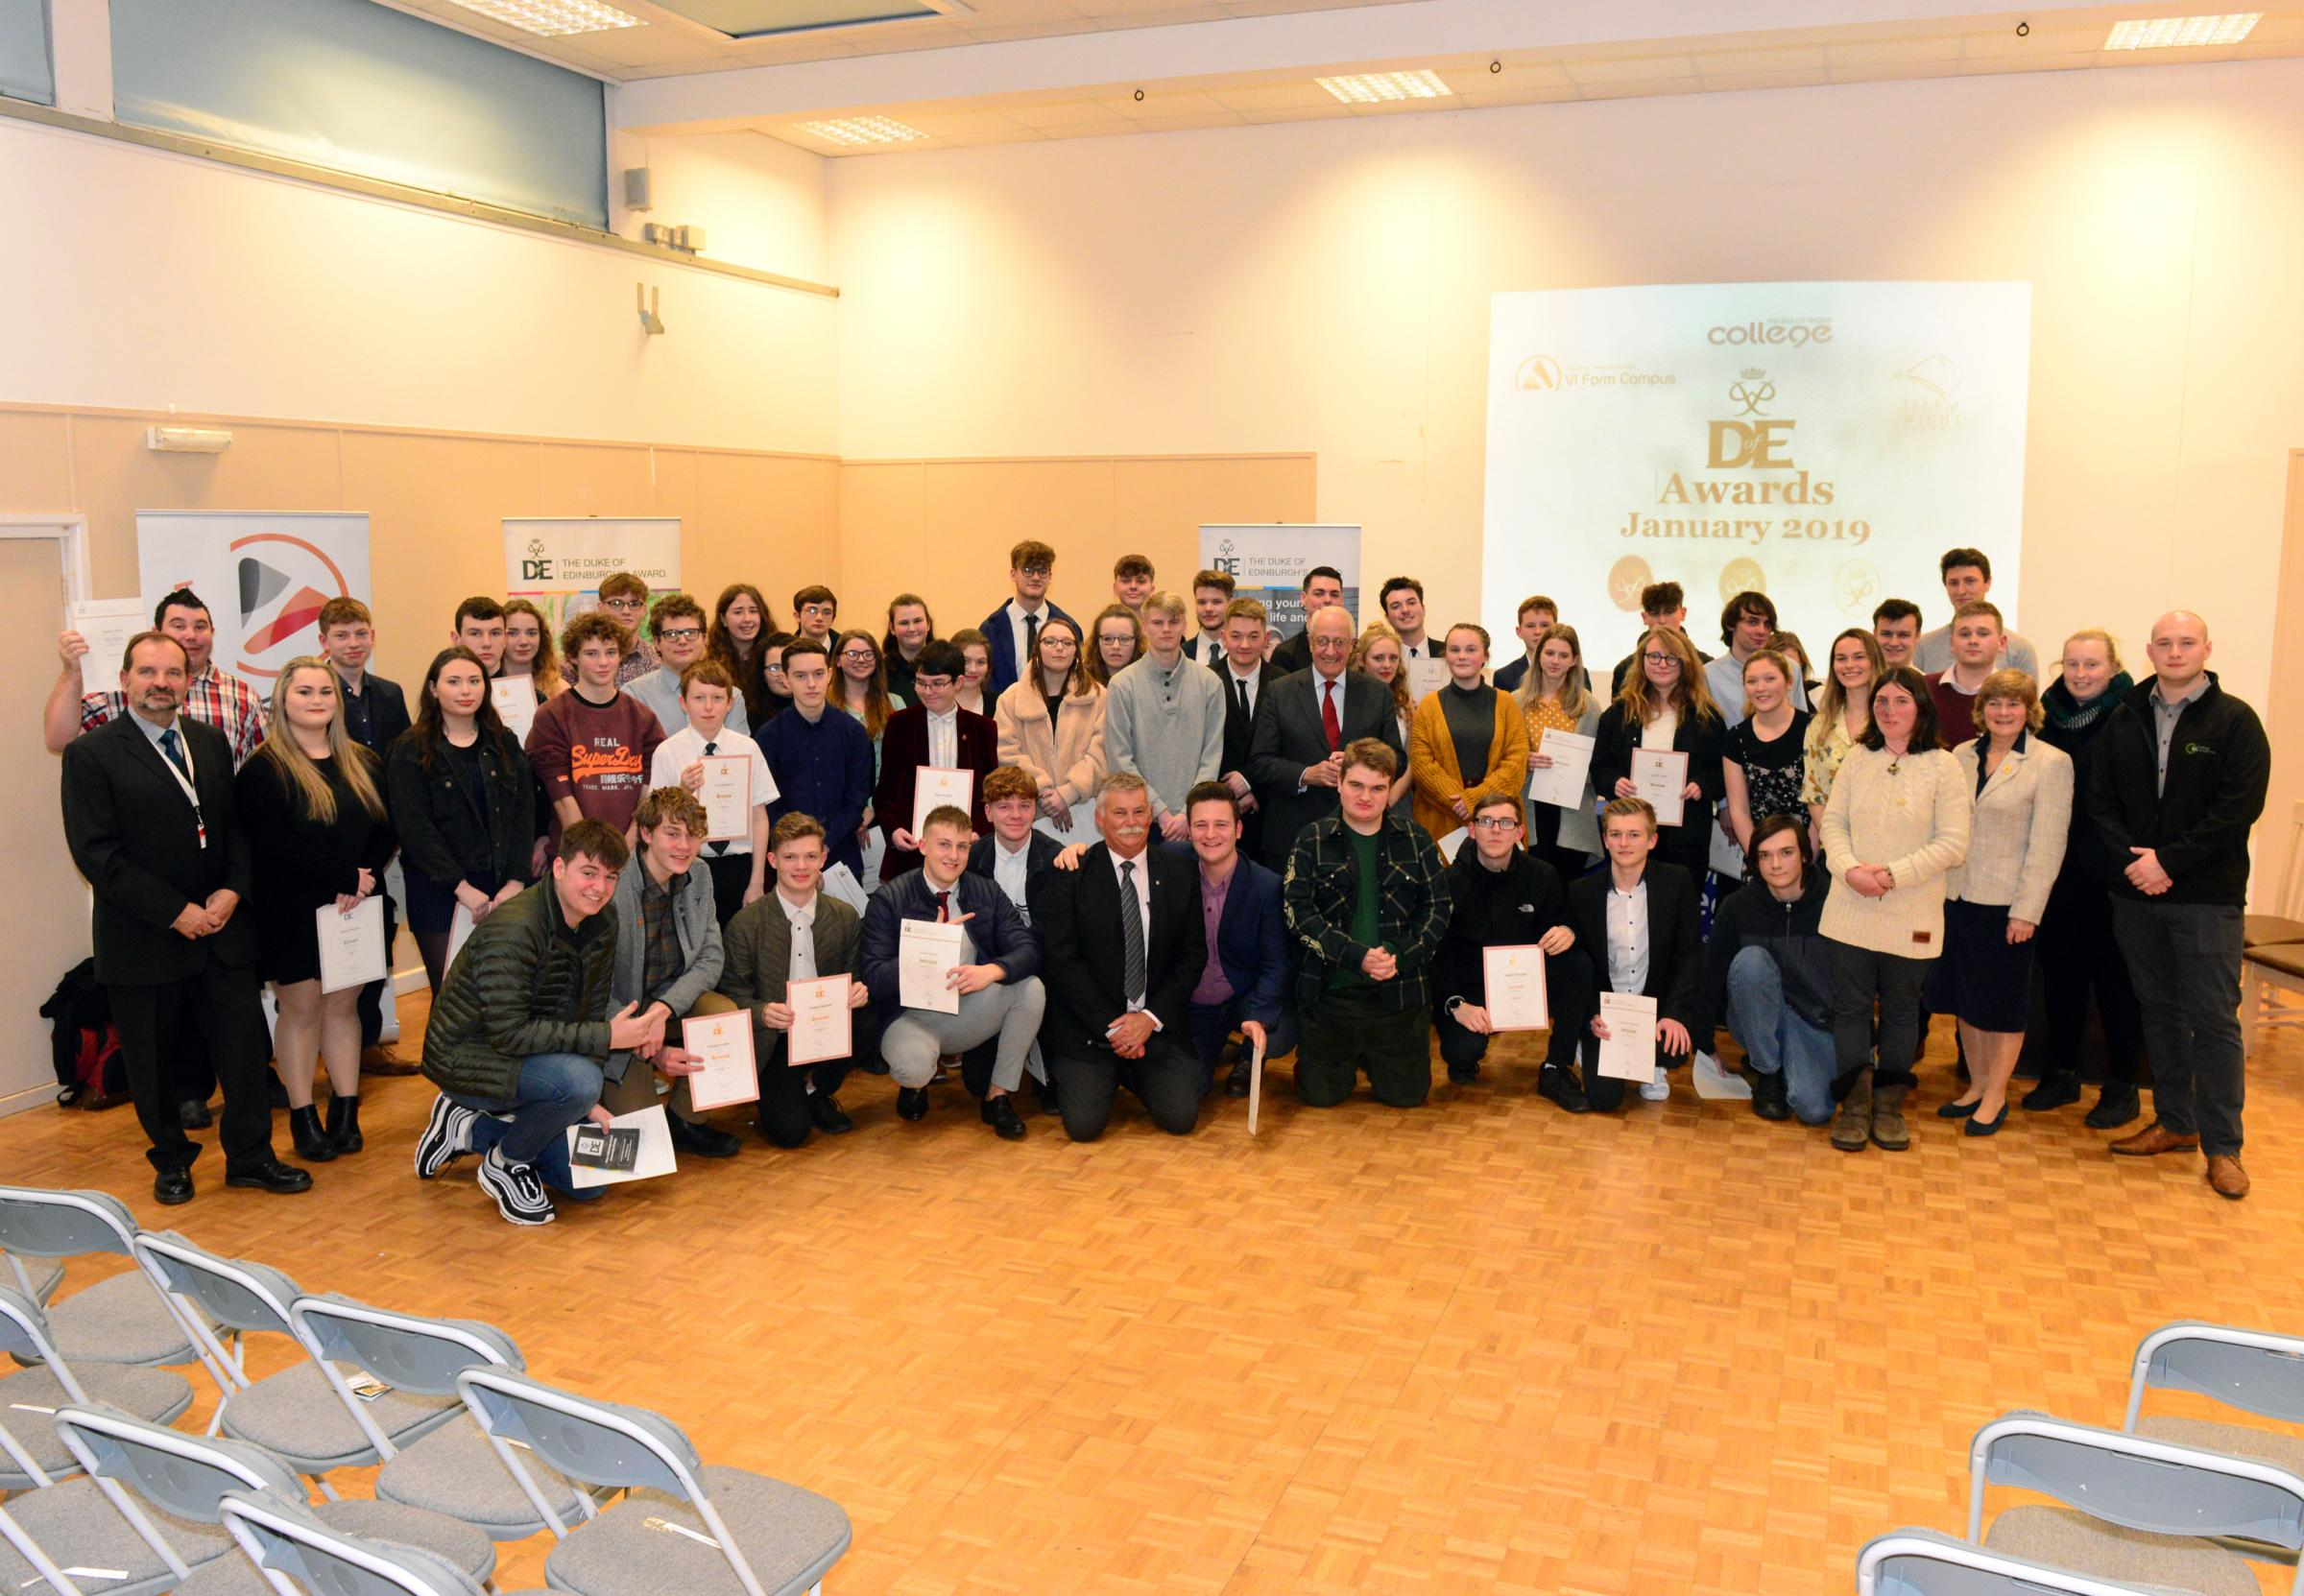 Duke of Edinburgh Awards Evening - Award winners and tutors.